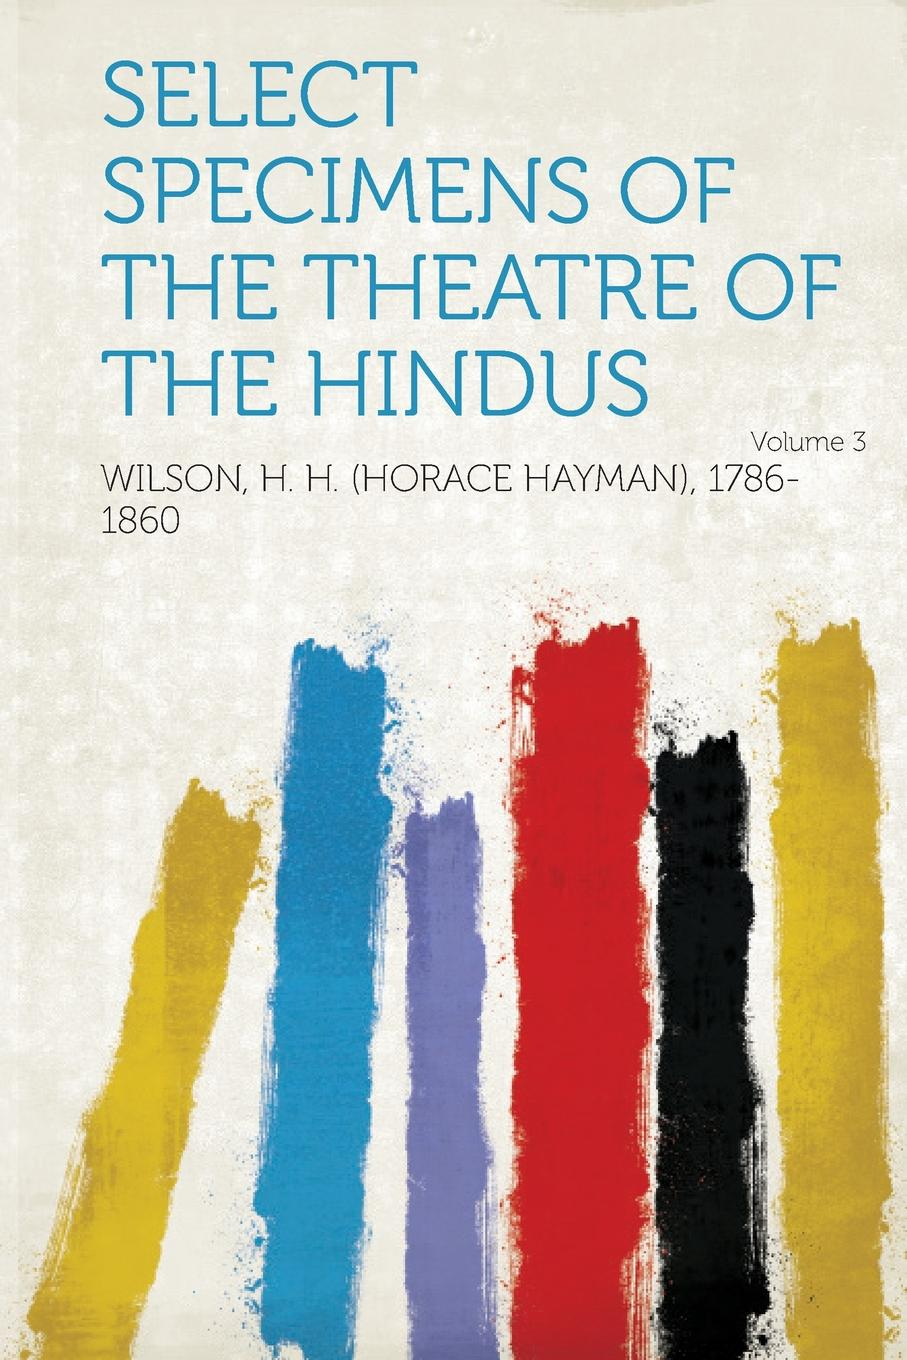 купить Select Specimens of the Theatre of the Hindus Volume 3 онлайн